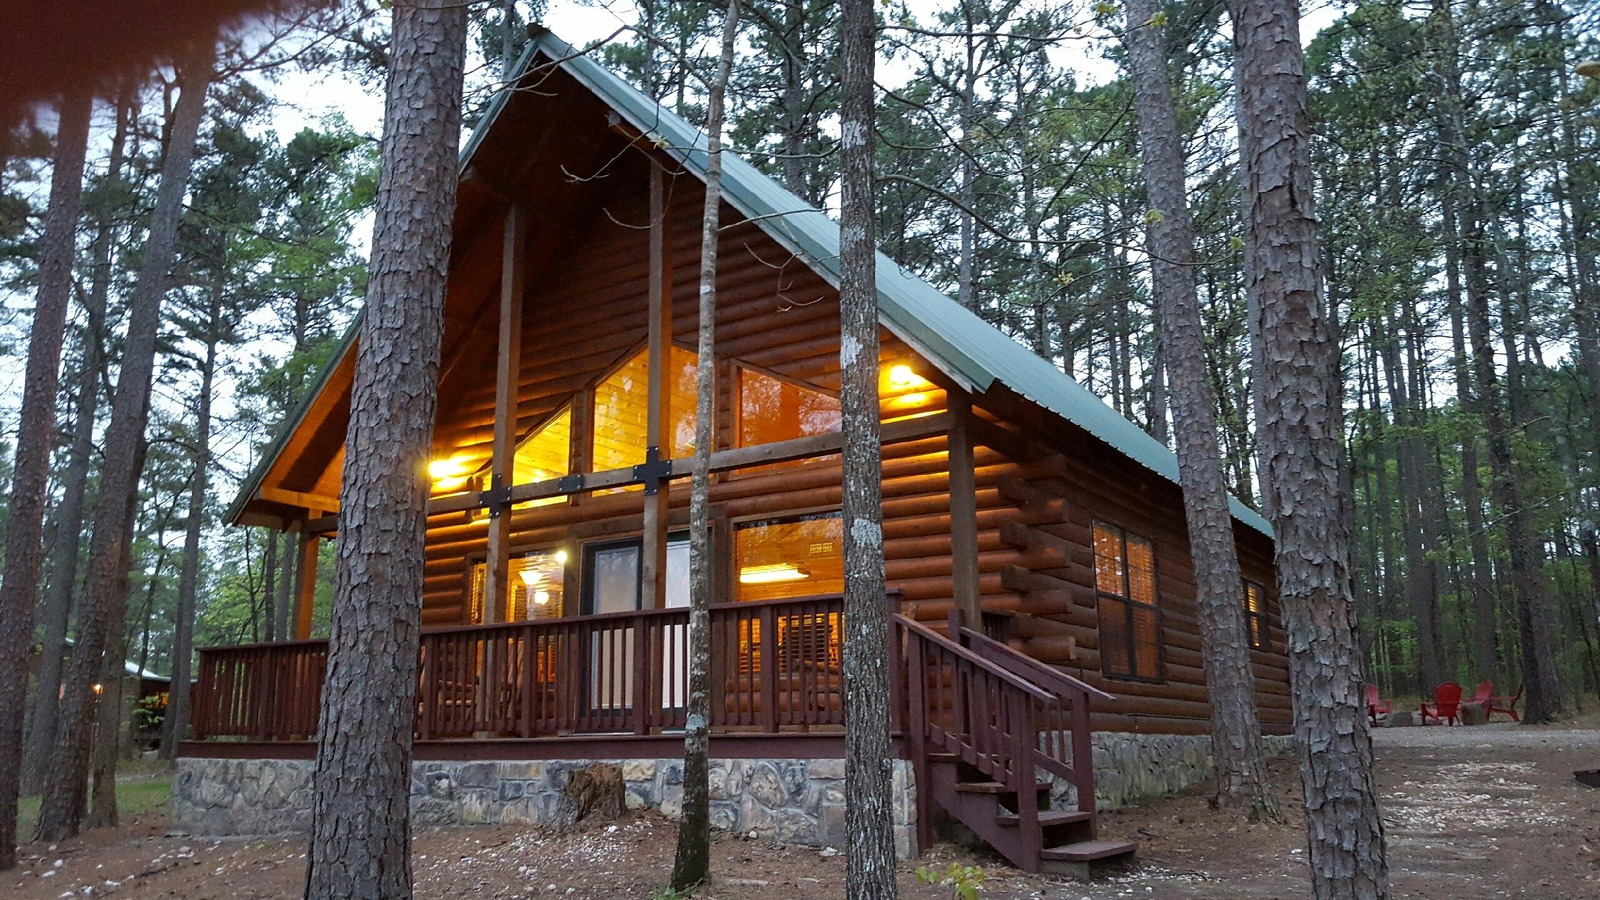 Wagon Wheel Cabin Is Located In Carson Creek Estates, Which Is Less Than 3  Miles To The Best Swim Beaches, Picnic Areas And Boat Ramps On Broken Bow  Lake, ...